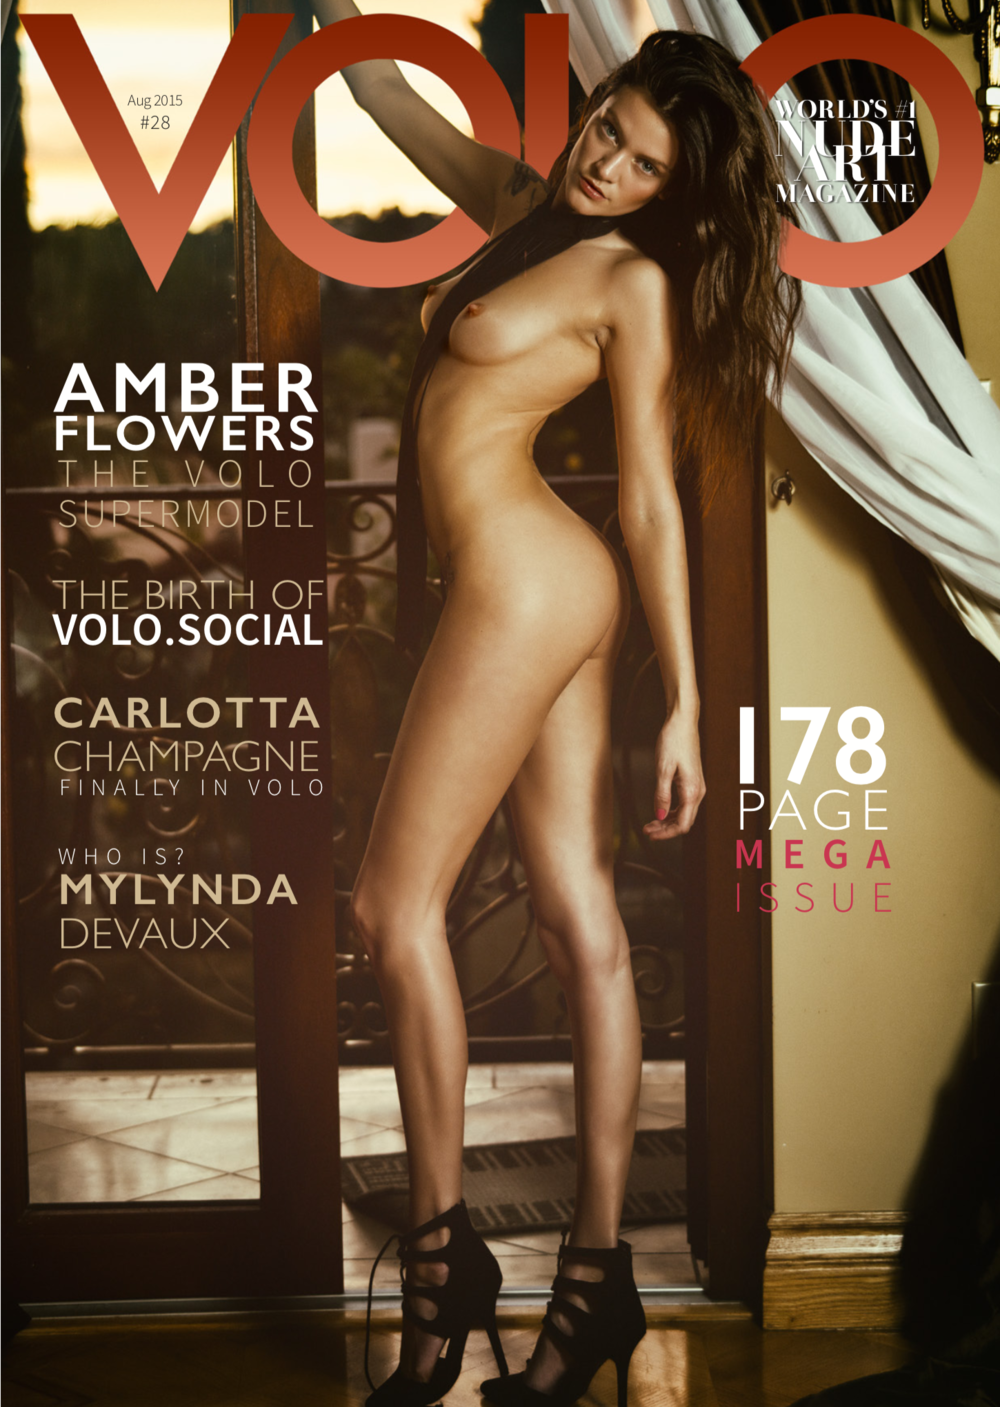 Copy of VOLO Magazine's Amber Flowers